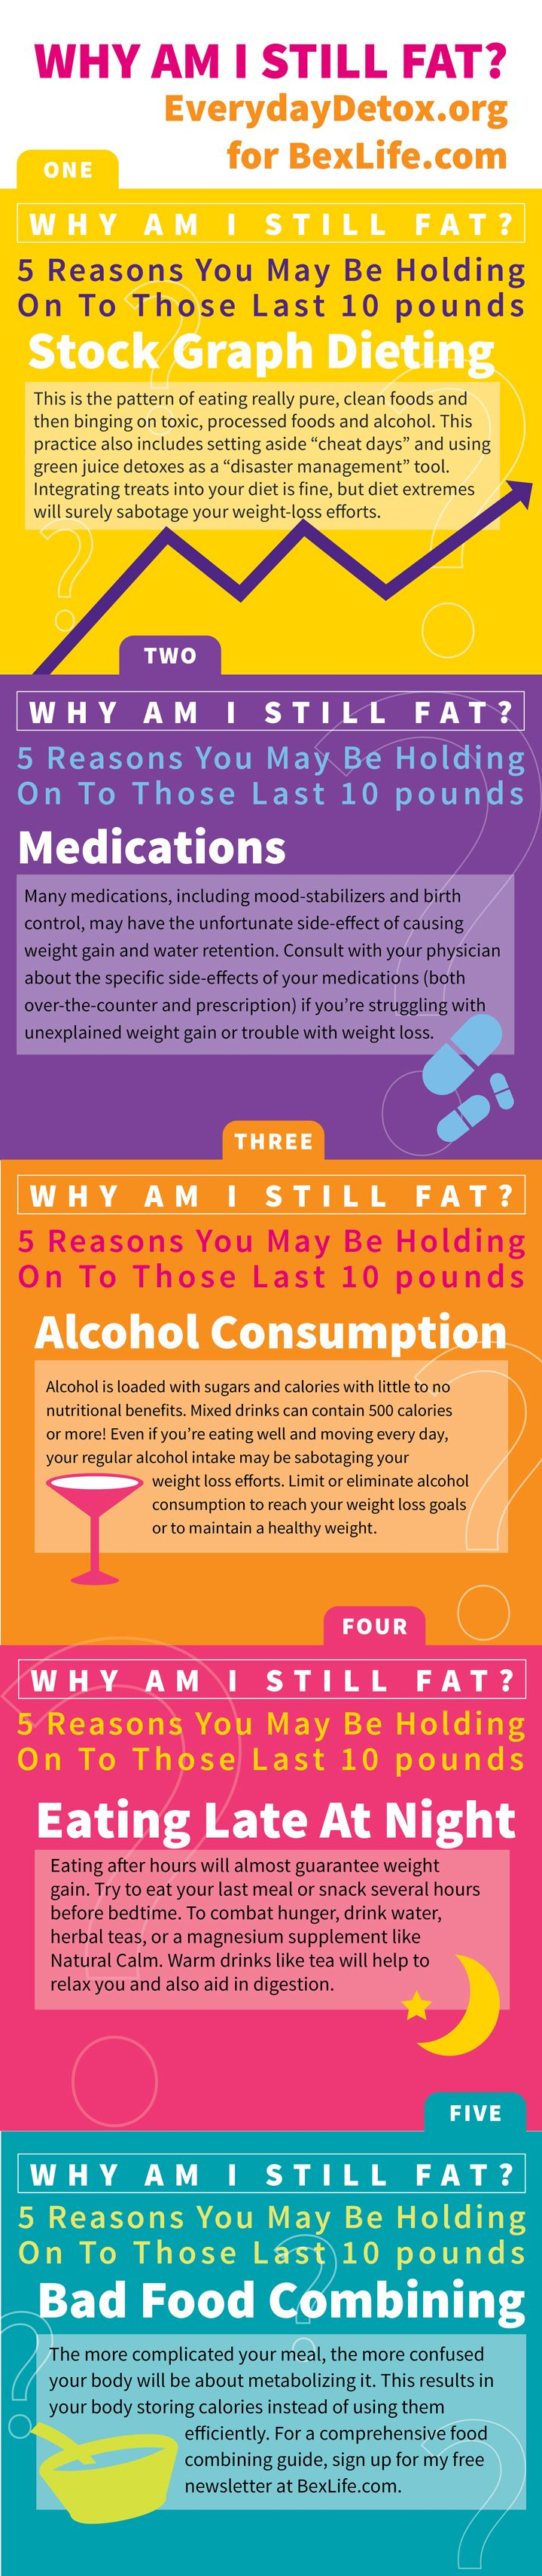 Medication to reduce fat absorption image 3